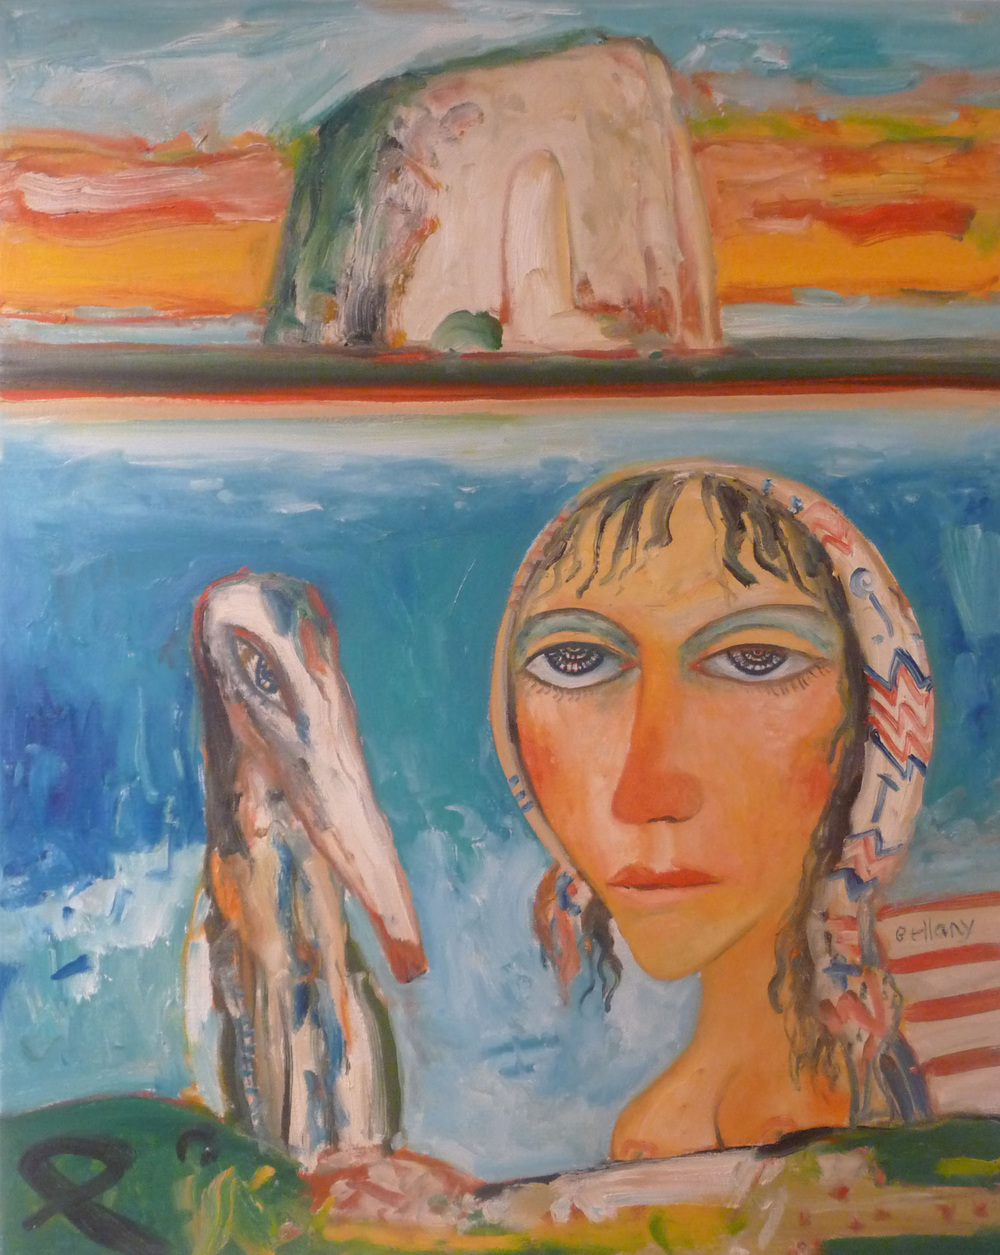 John Bellany 'Woman With Dog' 76 x 61cm.jpg